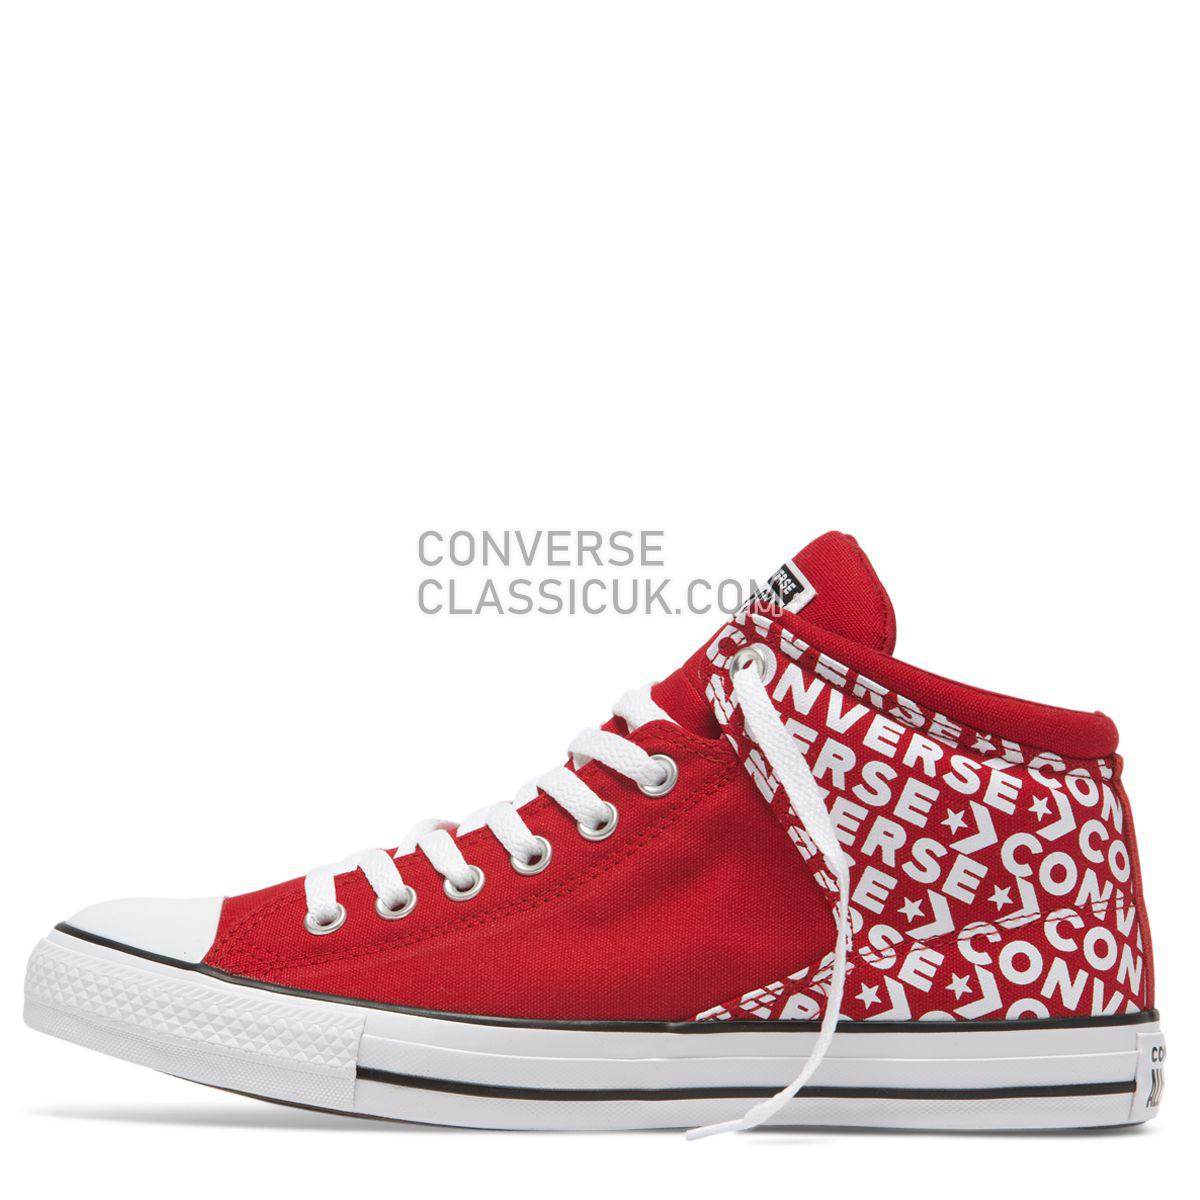 Converse Chuck Taylor All Star High Street Wordmark Mid Enamel Red Mens Womens Unisex 163955 Enamel Red/Enamel Red/White Shoes